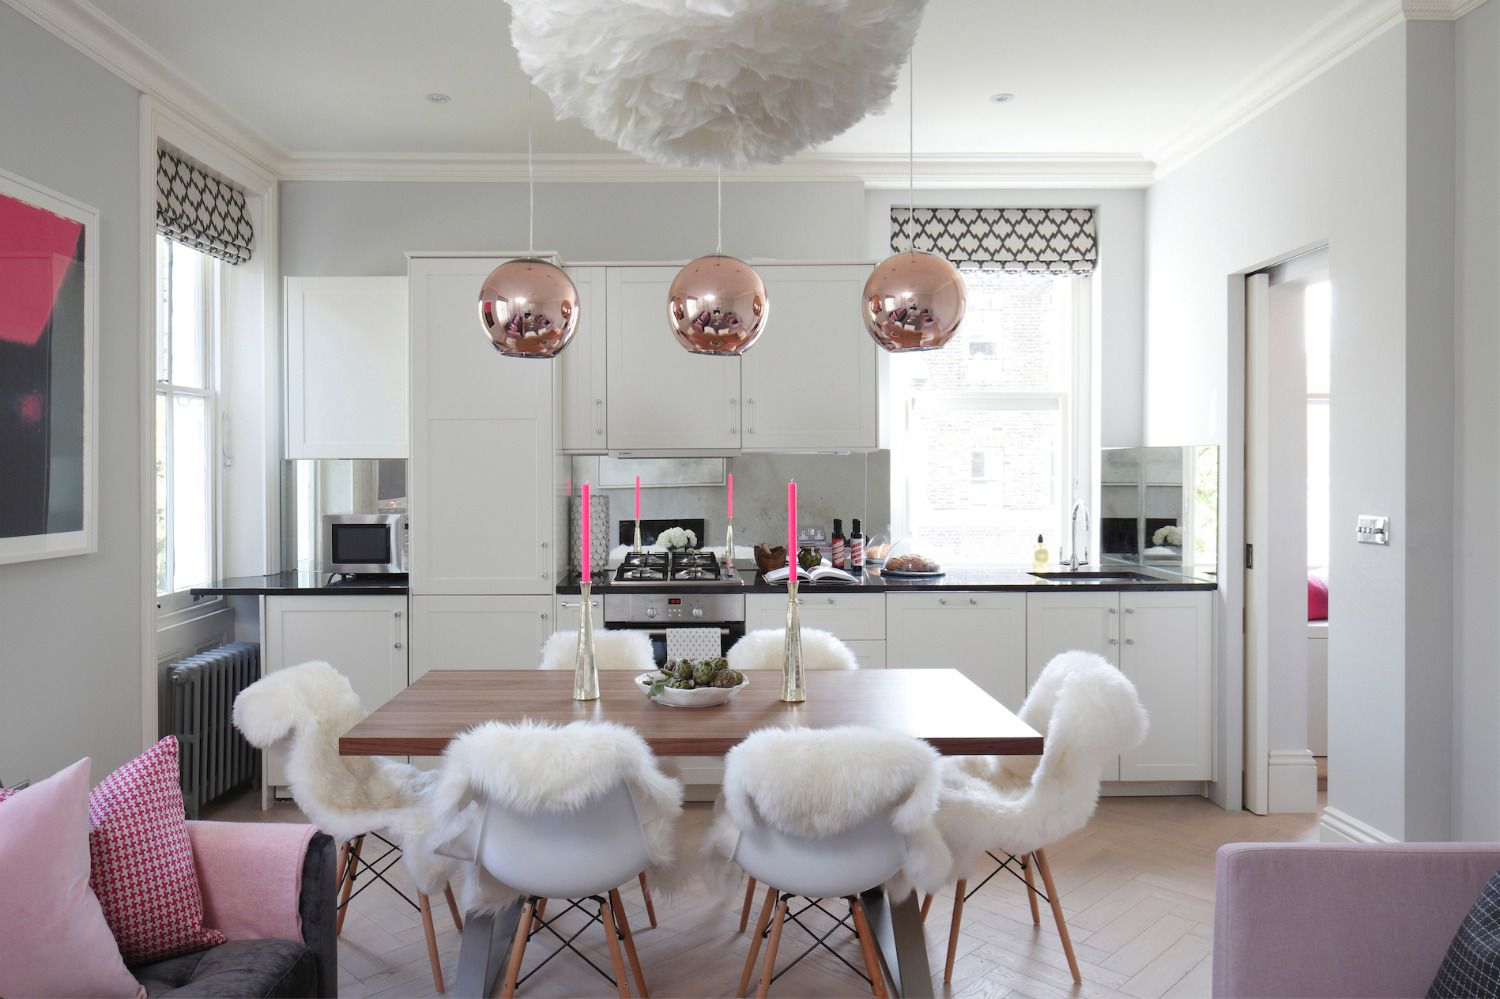 How to decorate a room from start to finish for How to start decorating a living room